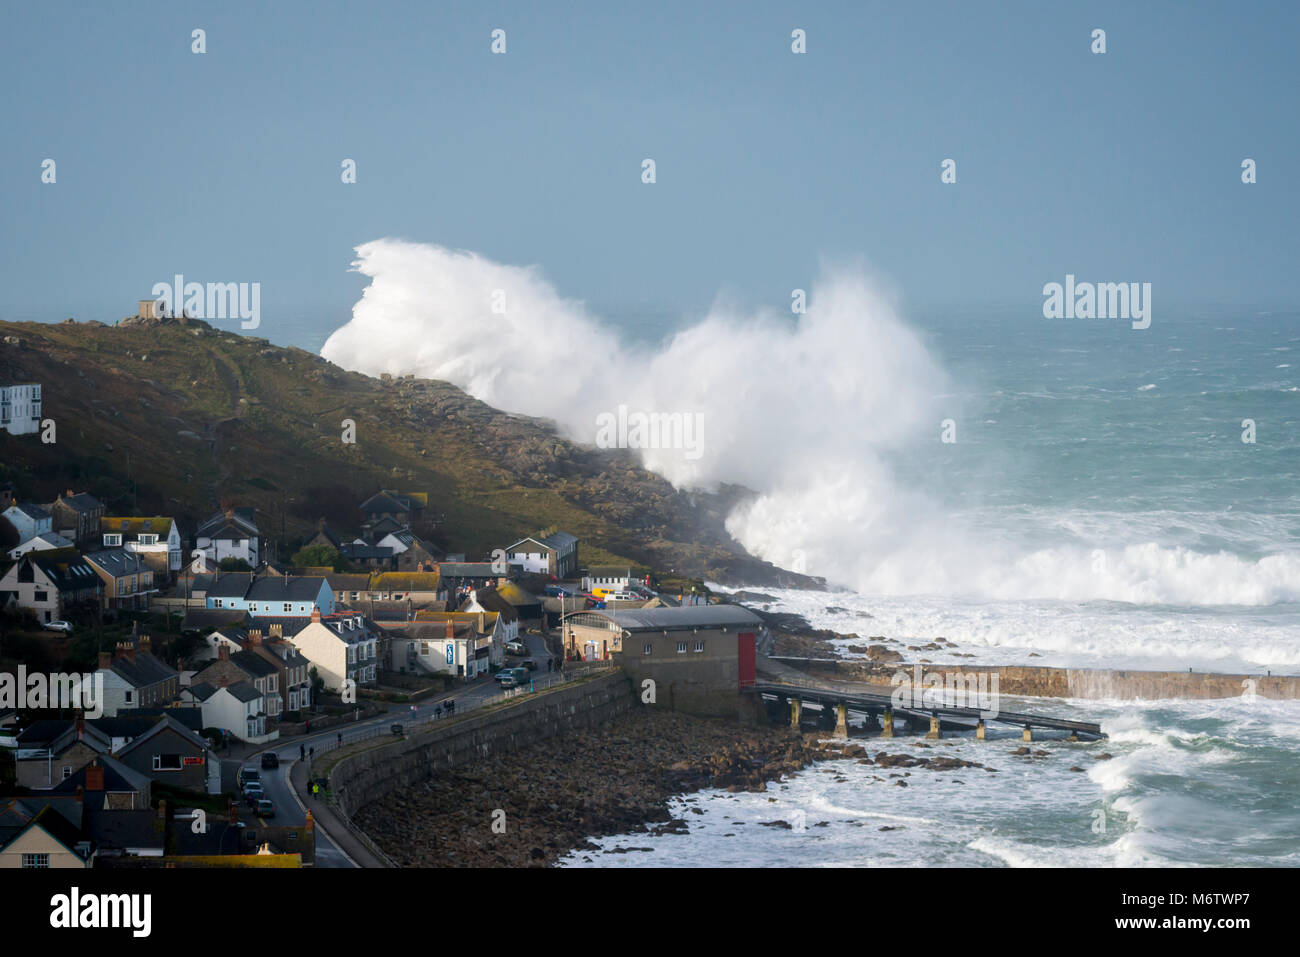 A massive wave at Sennen Cove threatens to engulf the village - Stock Image